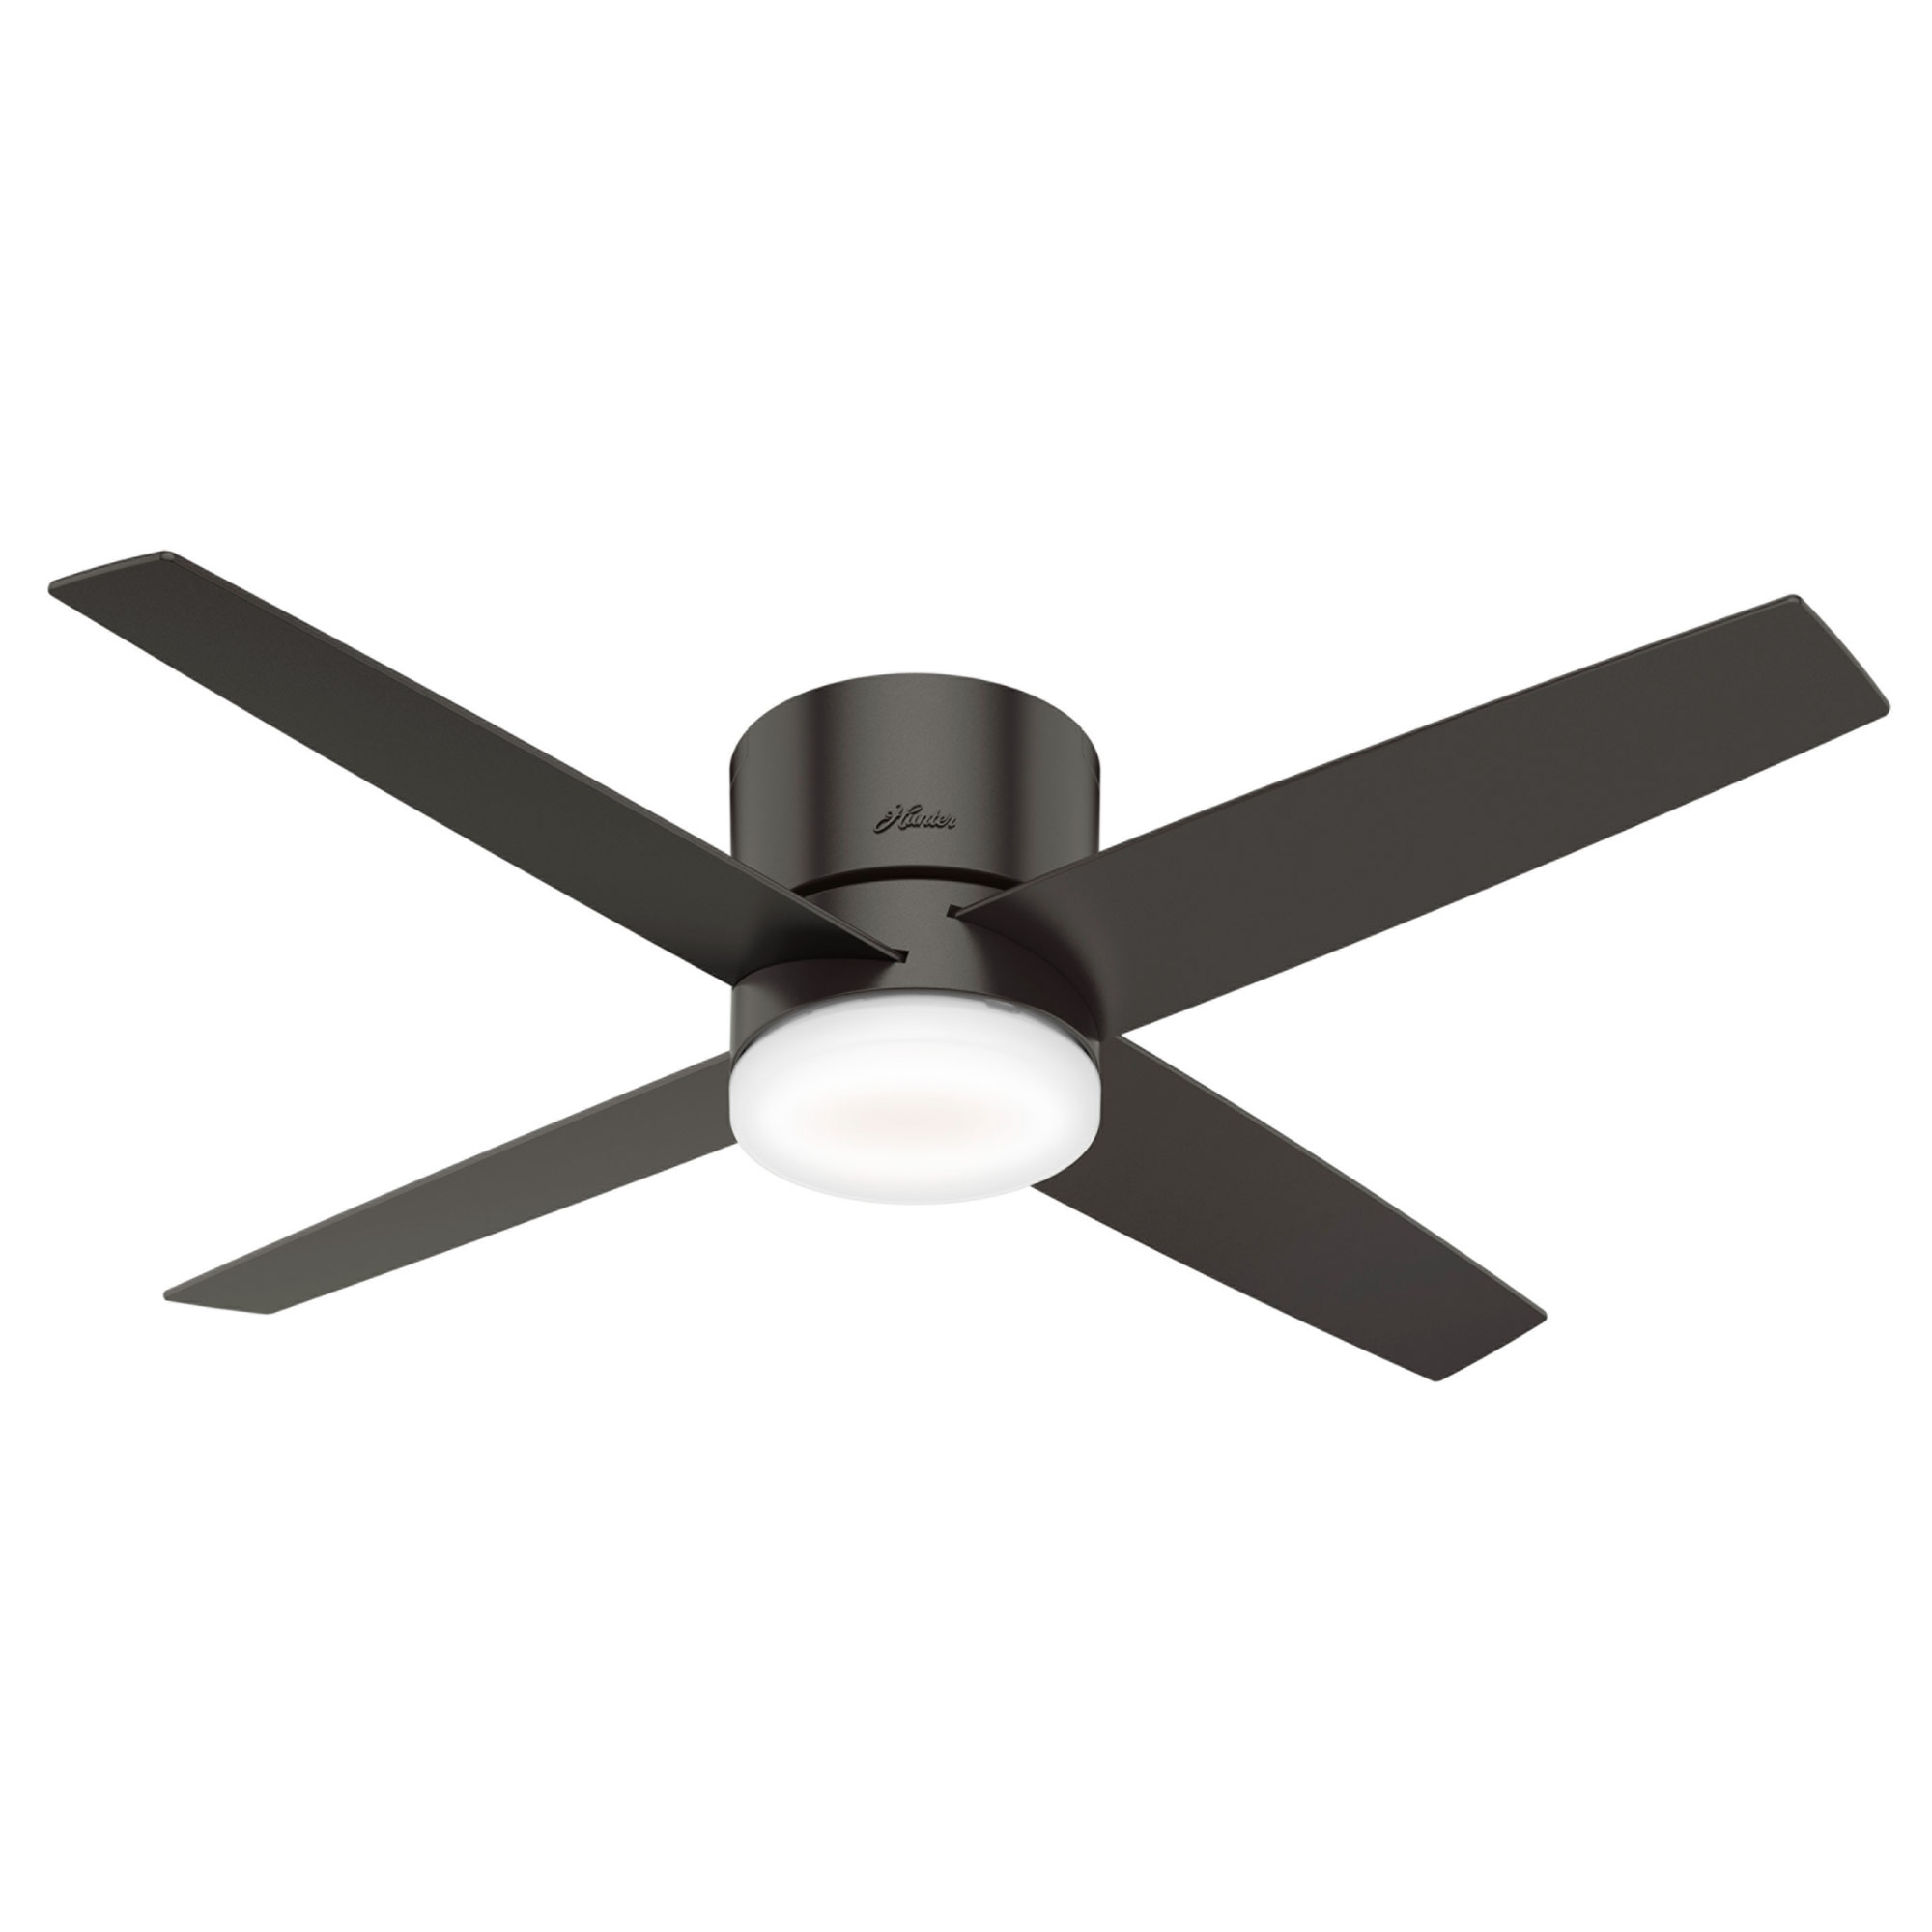 ceiling amazon home fan com indoor pages haiku series wifi l refurbished white included not ceilings with